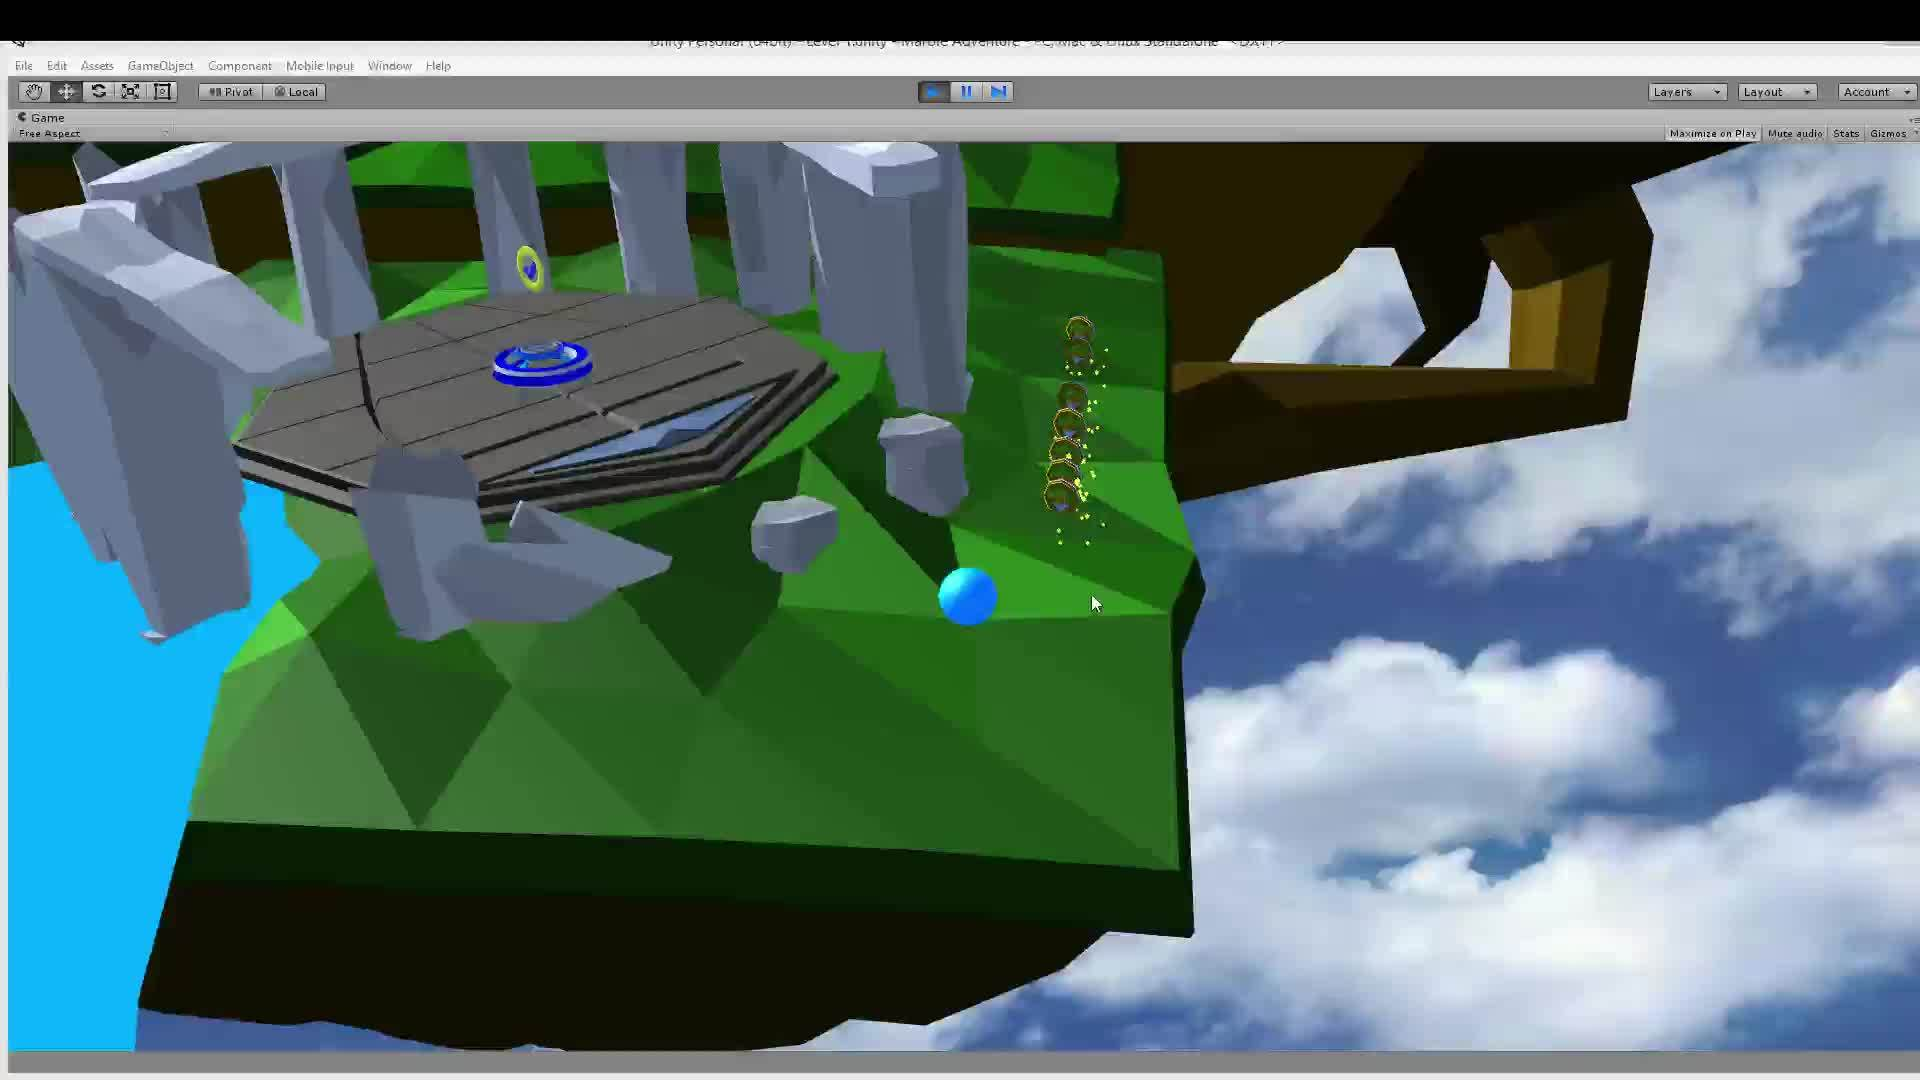 ▷ Learning with Roll-a-Ball: Made myself a nice little door using